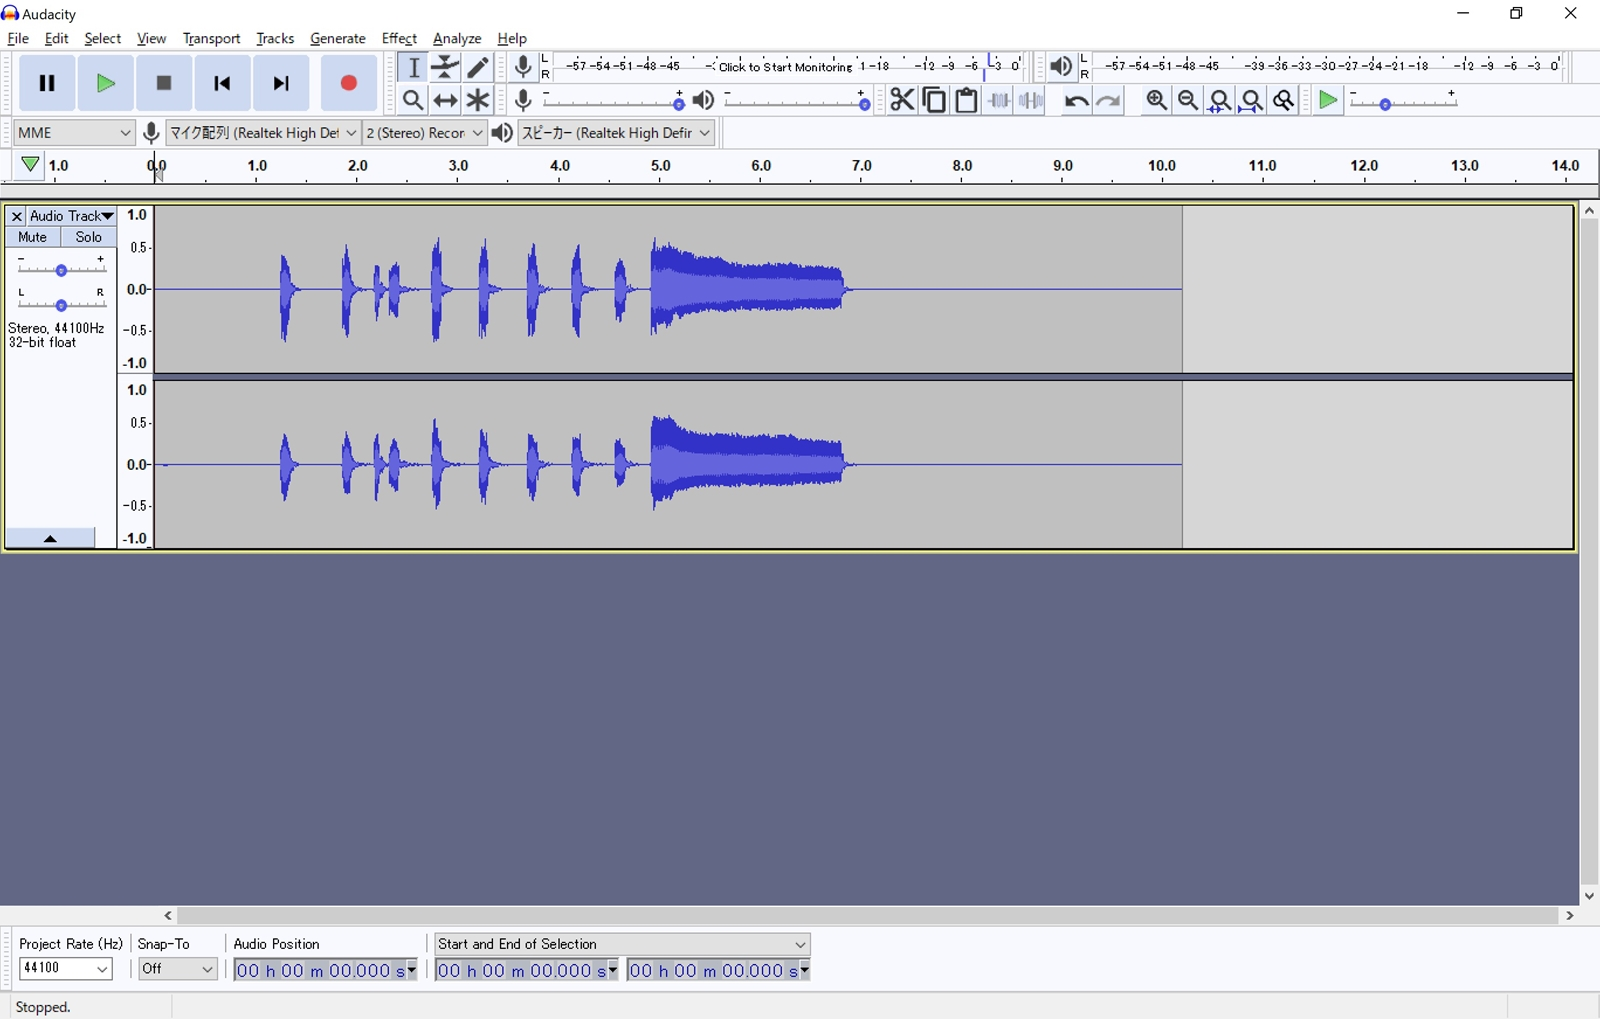 audacity lame_enc.dll download